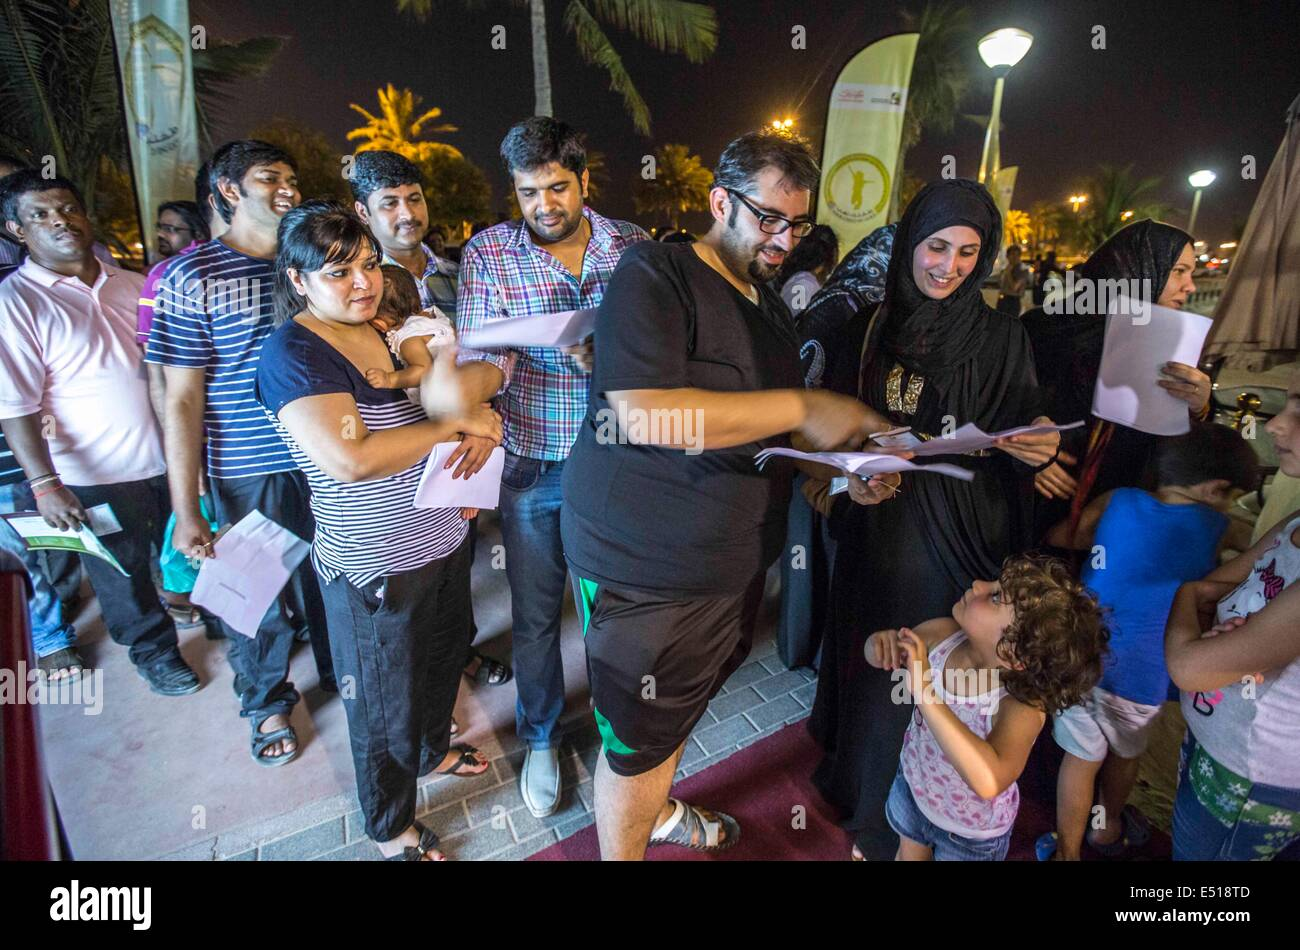 """Dubai, United Arab Emirates. 17th July, 2014. People line up to register their respective weights for a """"lose weight Stock Photo"""